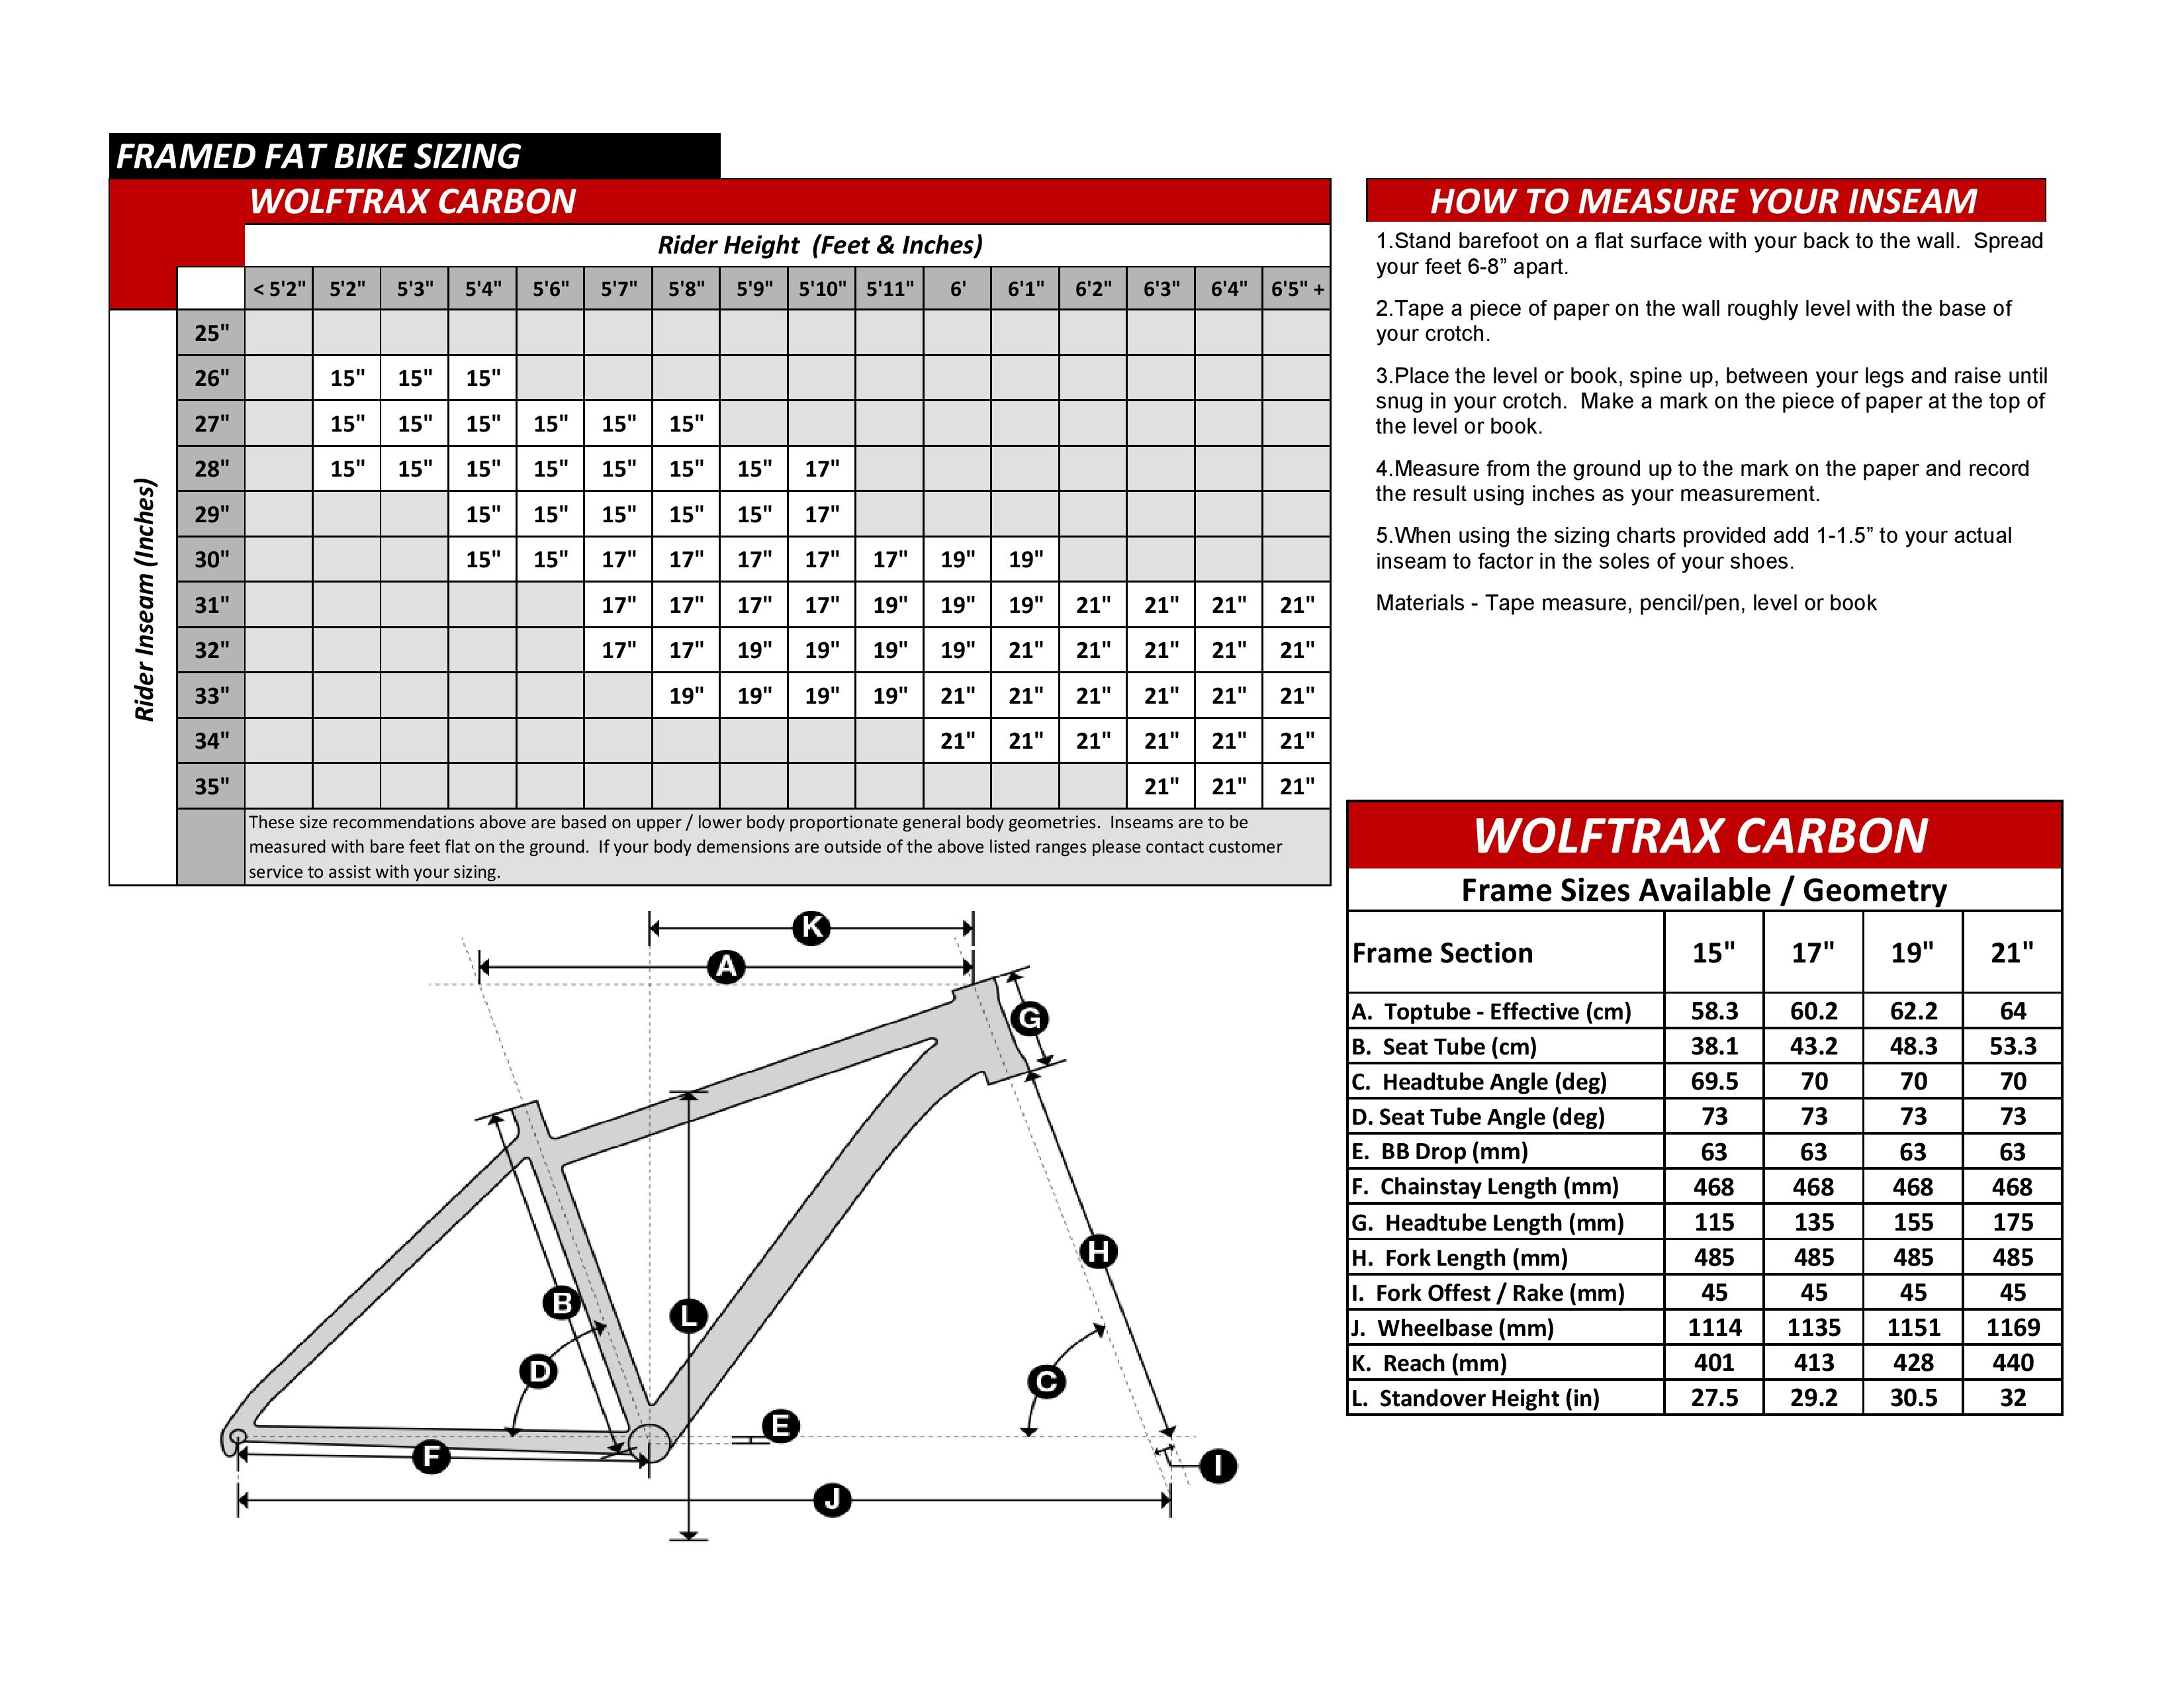 Wolftrax Carbon Bike Geometry Specs